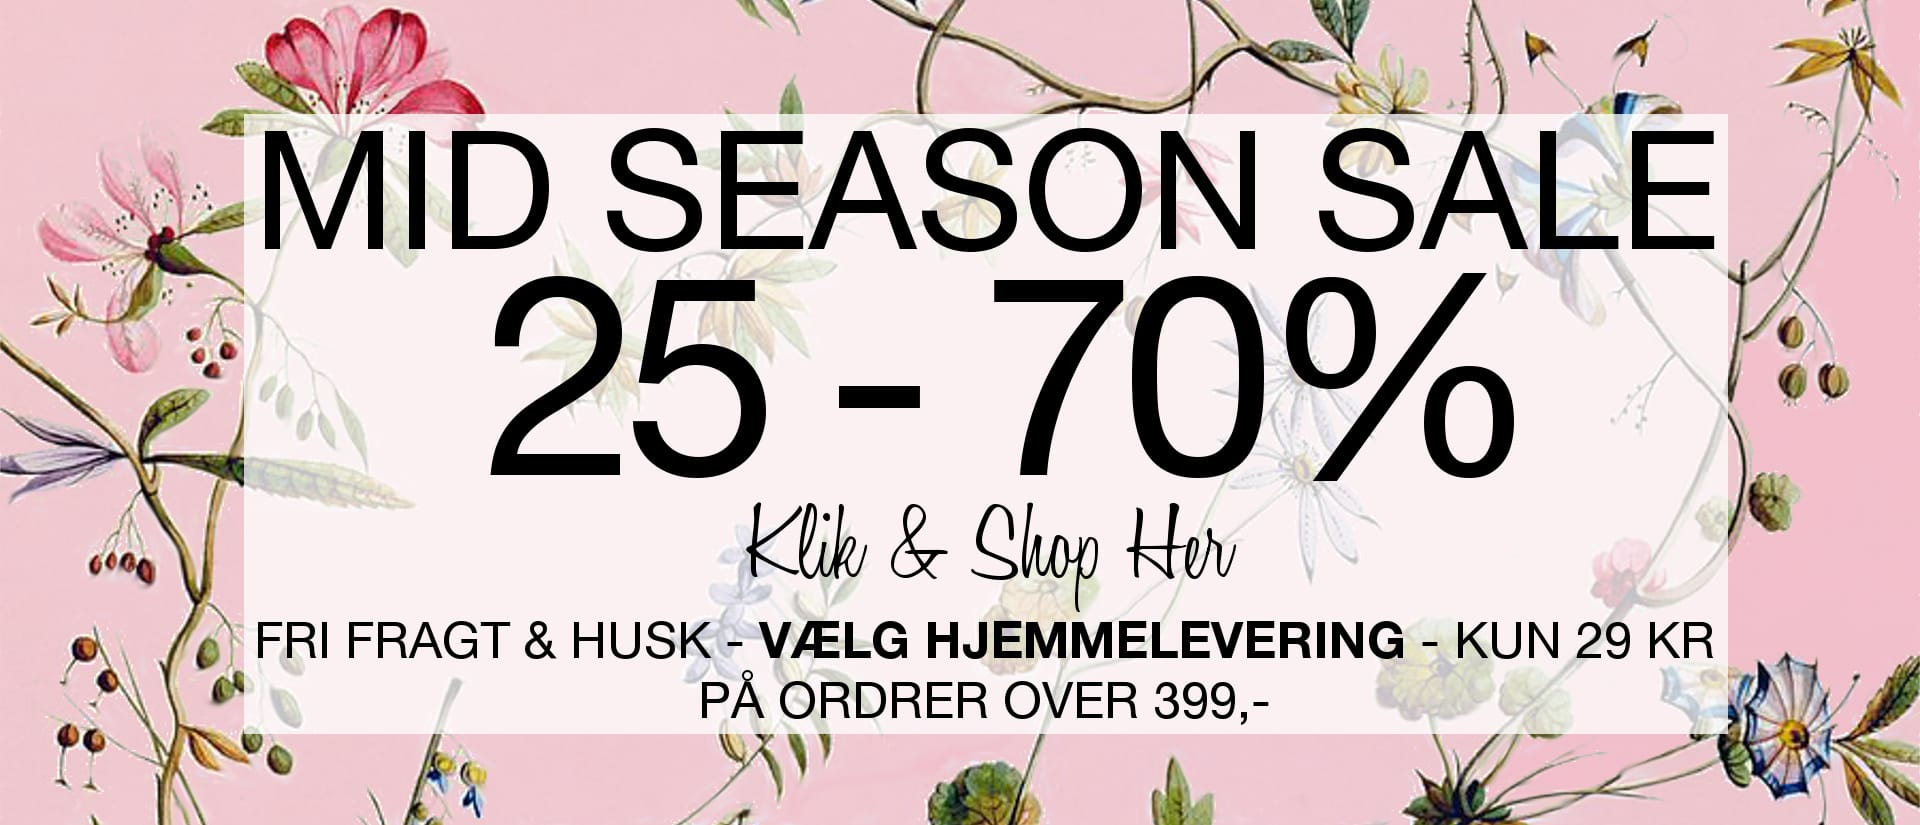 Mid Season Sale - Spar 25 - 70%